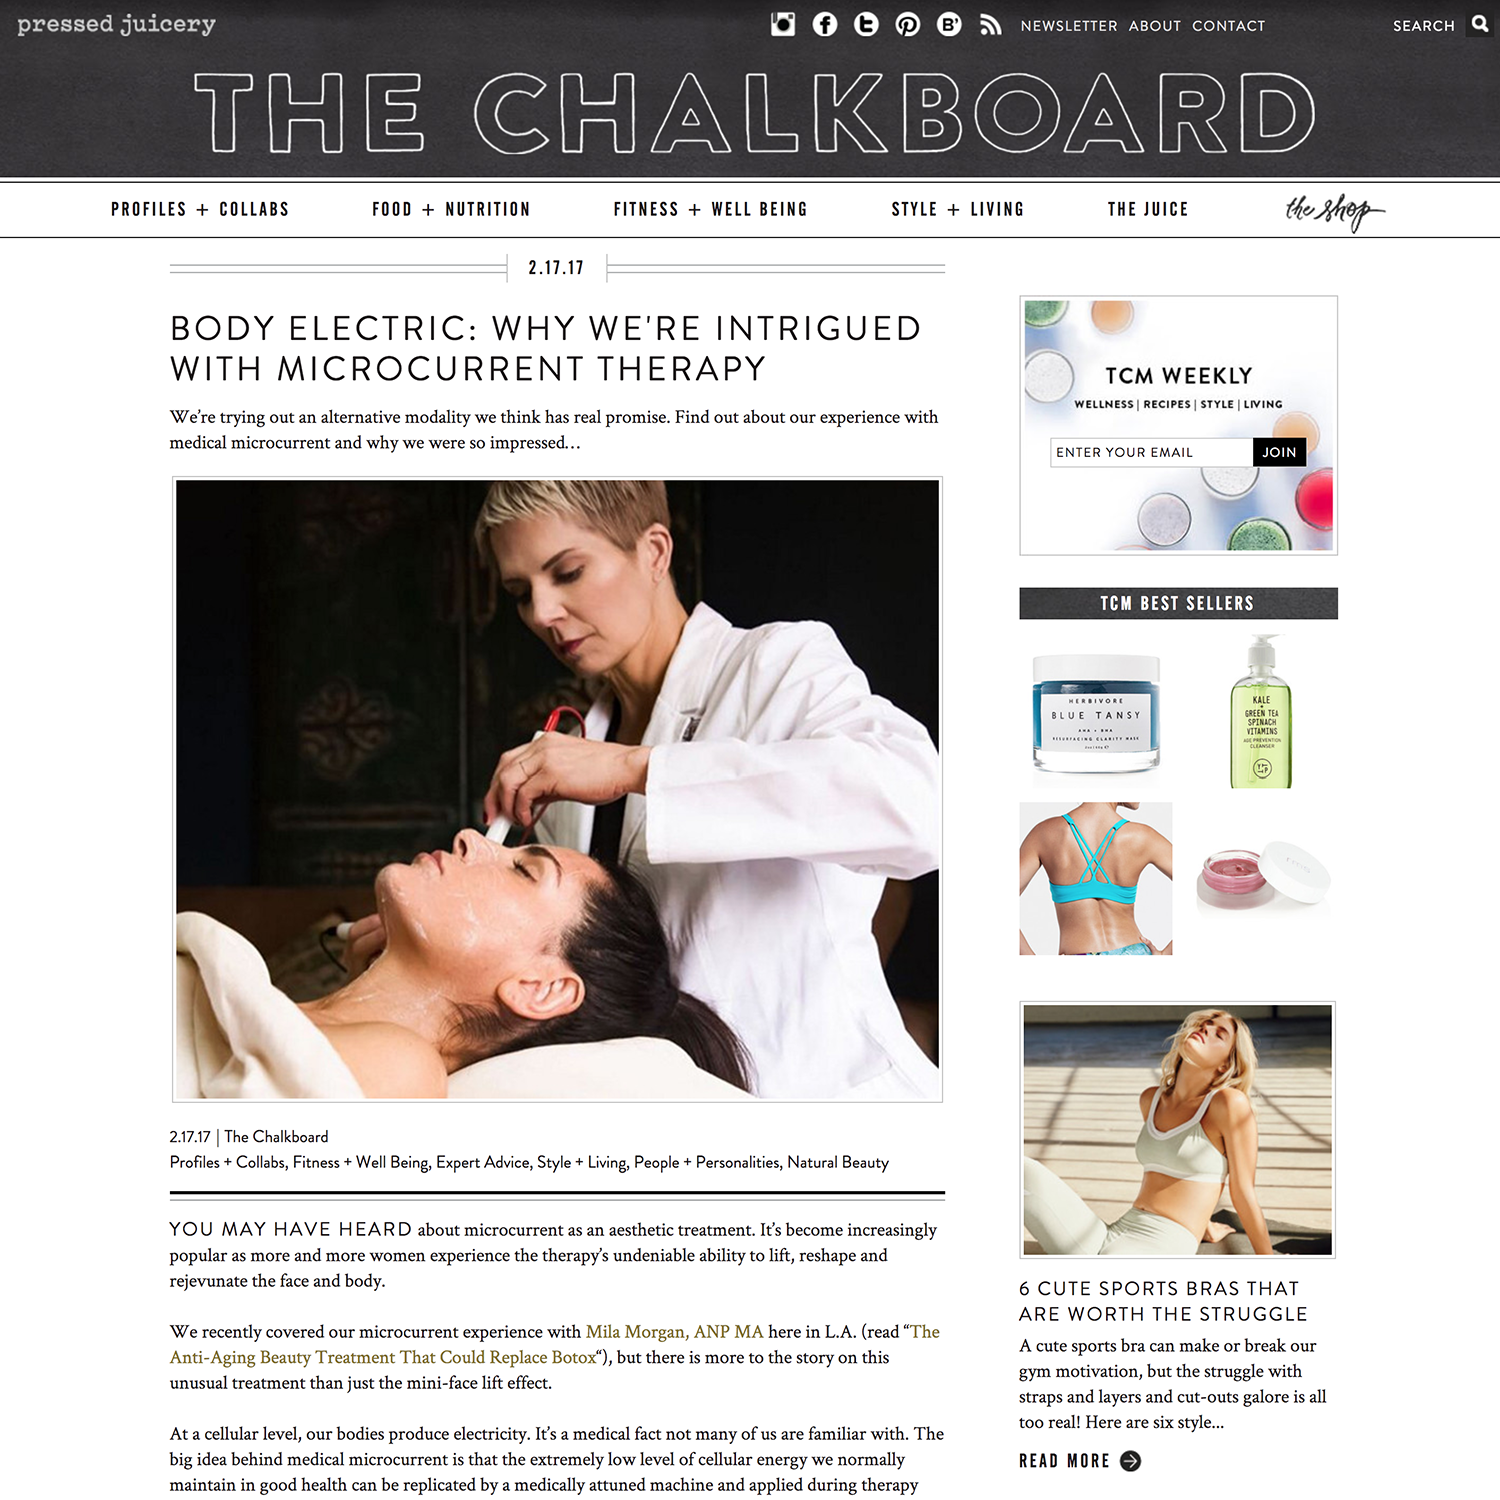 Copy of Chalkboard - Why We're Intrigued by Microcurrent Therapy - Mila Morgan Studio